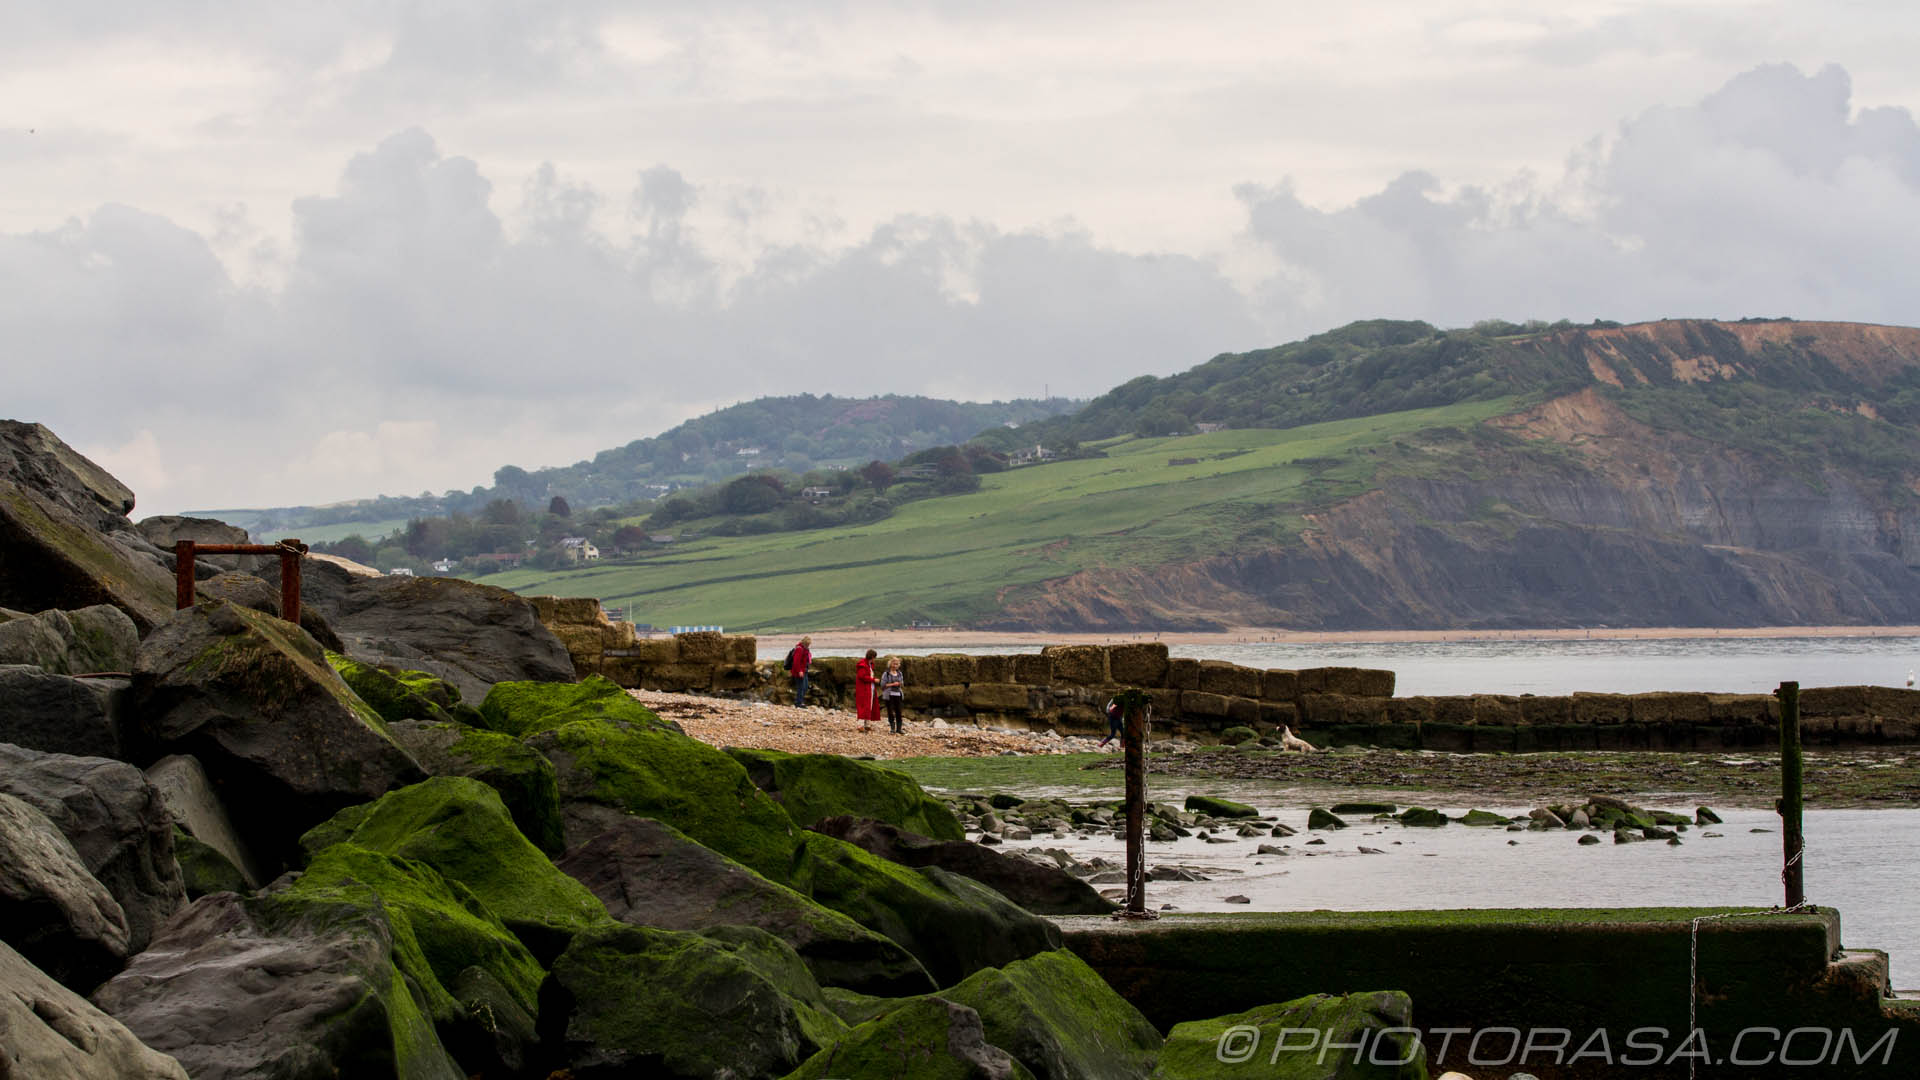 http://photorasa.com/jurassic-coast-lyme-regis/people-by-the-rocks/